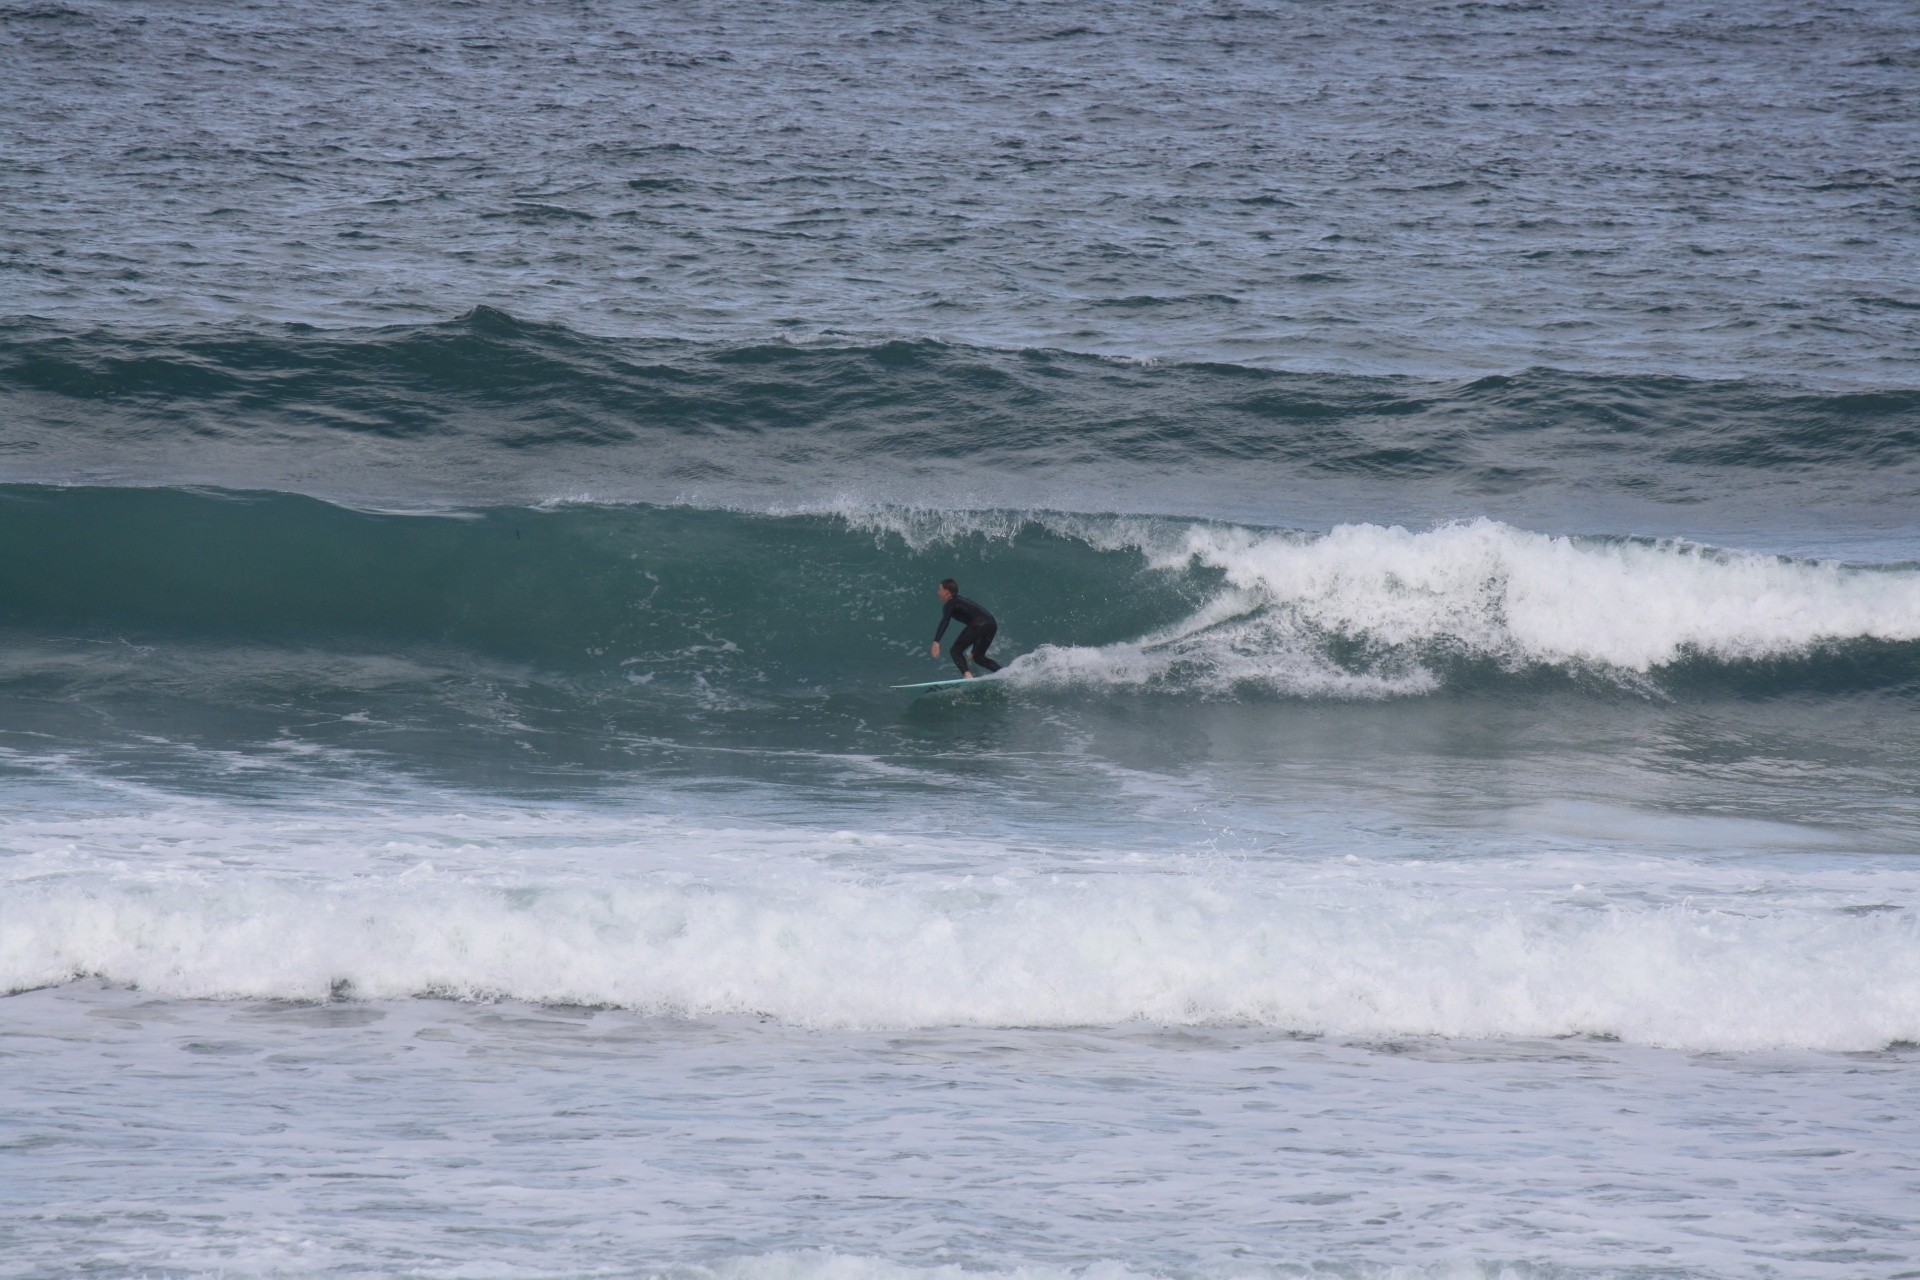 nat the surfer's photo of Porthtowan